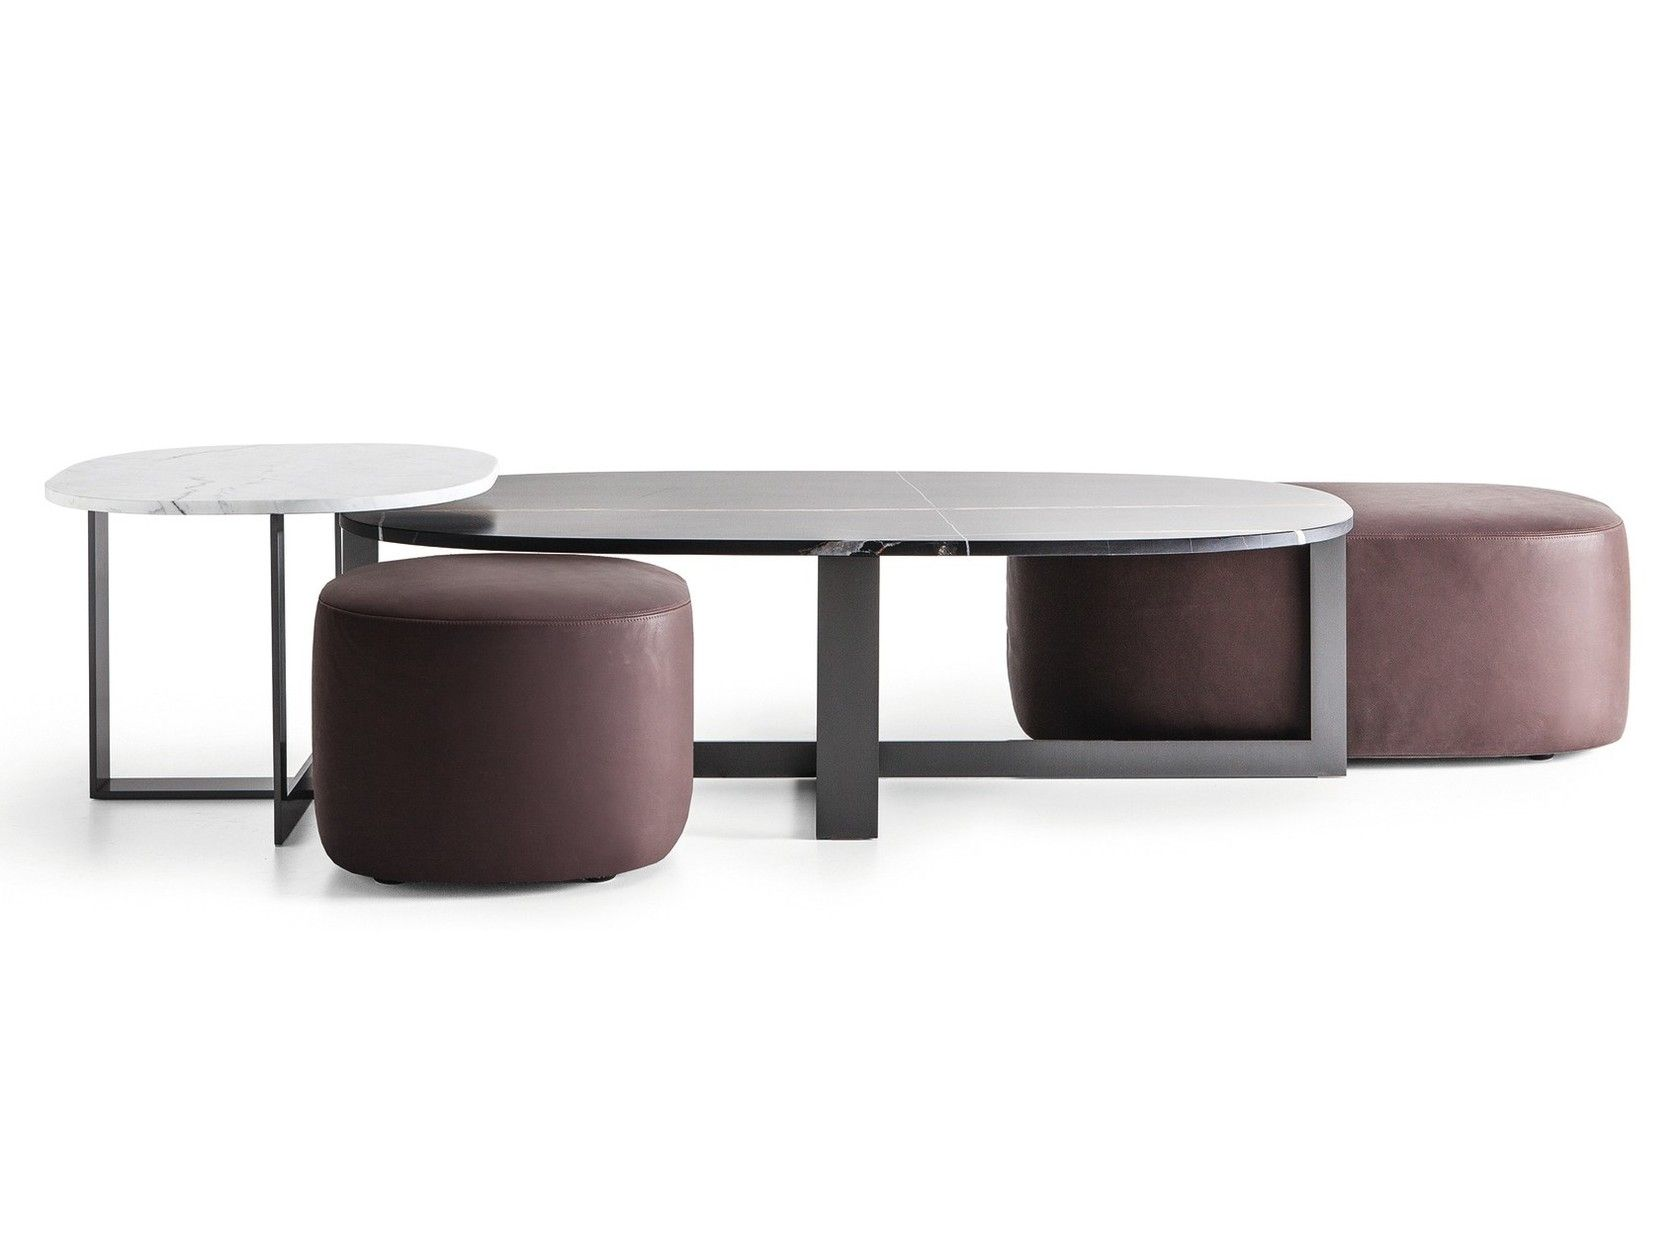 Upholstered Leather Pouf Domino Next Pouf By Molteni C Ottoman Coffee Table Table Lamp Design Coffe Table [ jpg ]